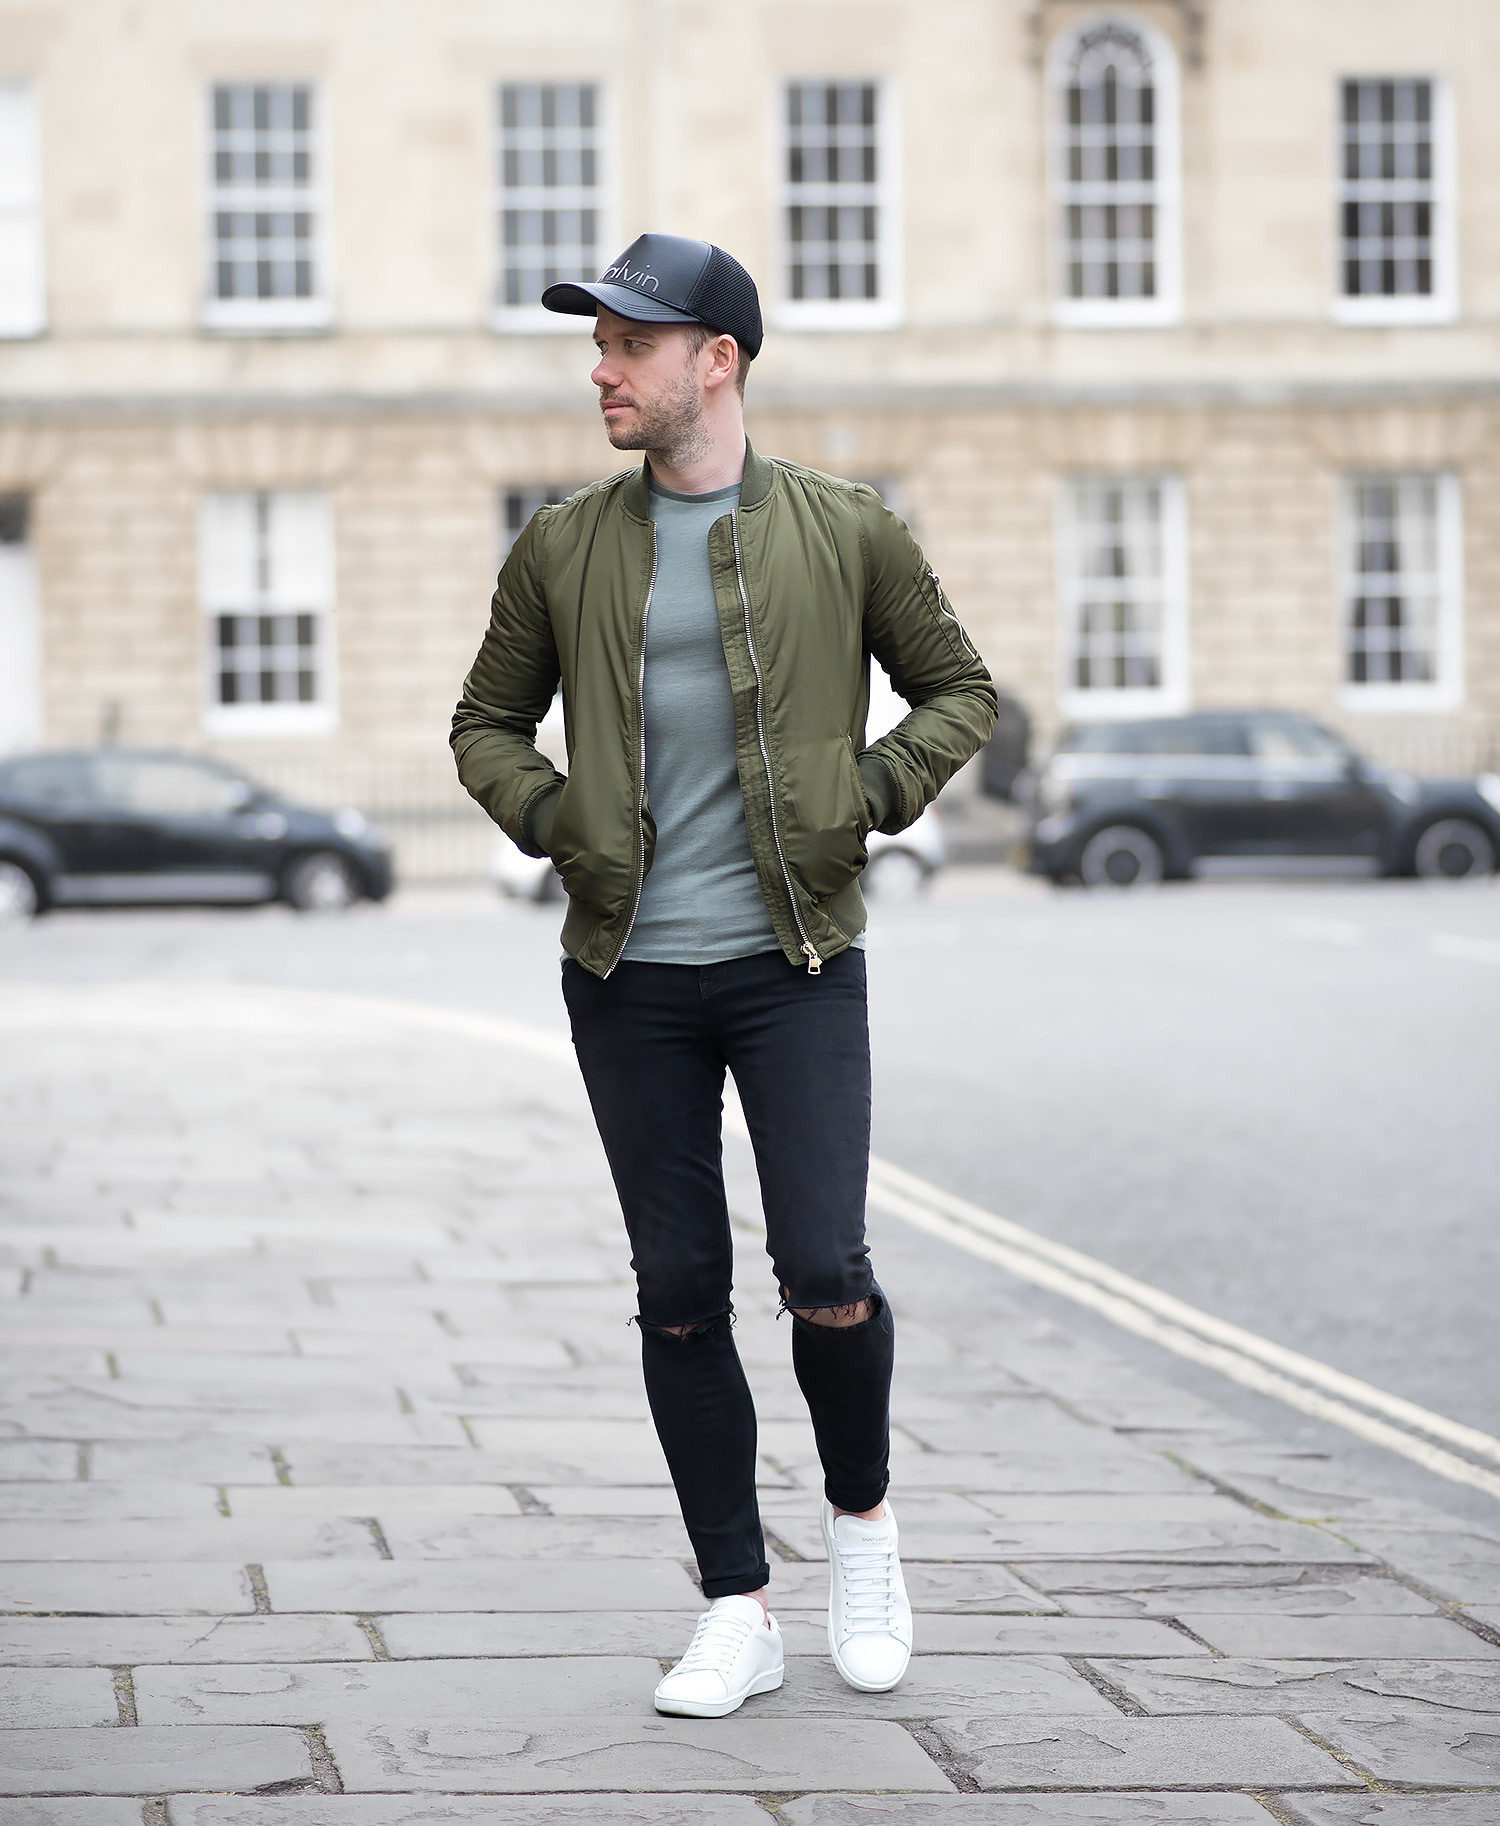 a02b1dcc7 How To Wear Black Jeans With an Olive Bomber Jacket For Men (20 ...